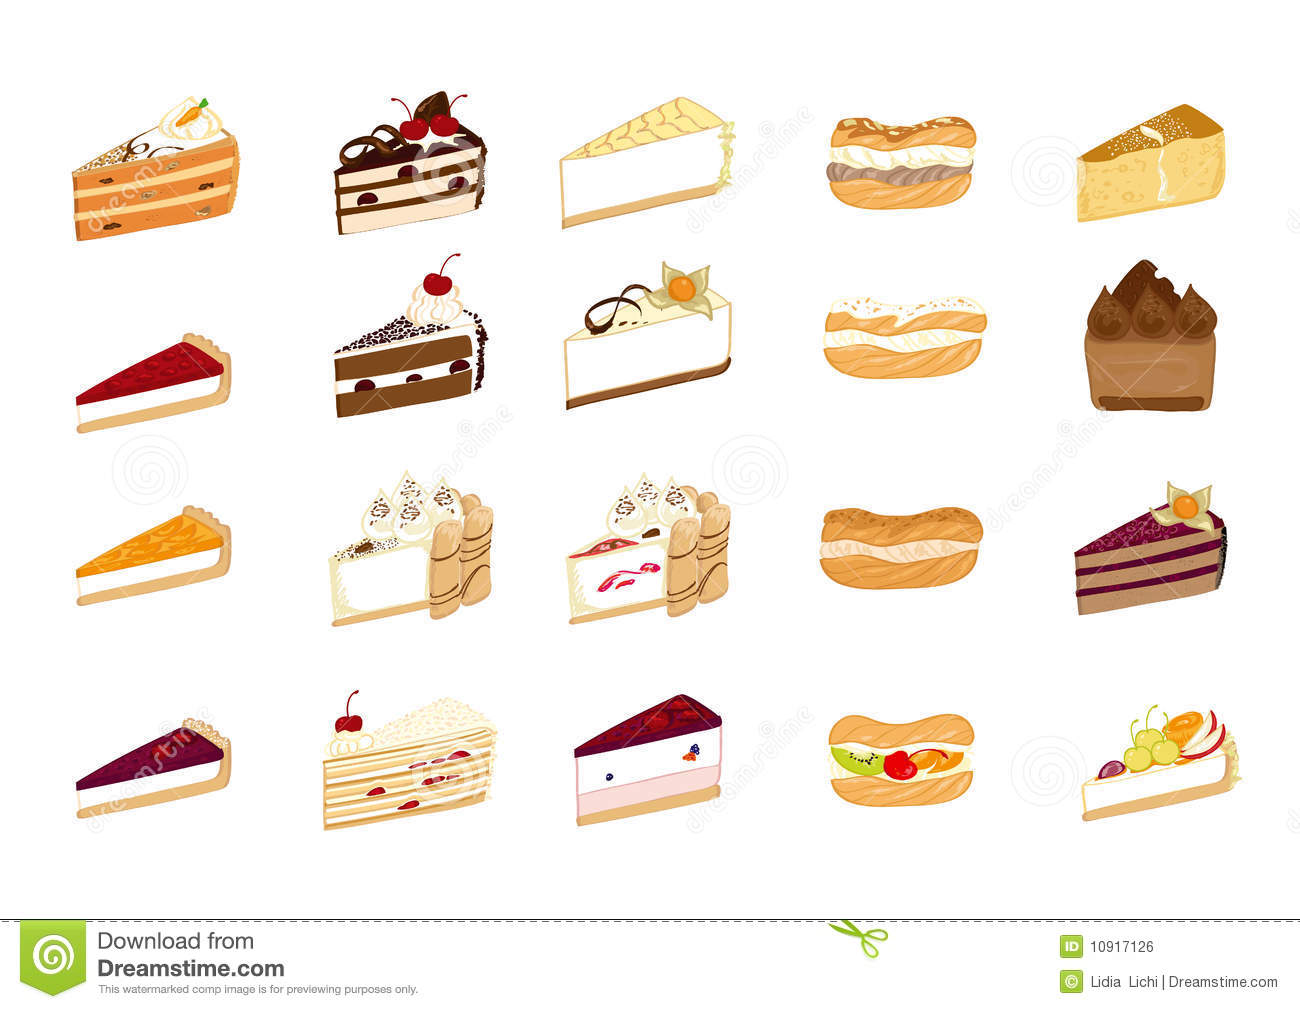 Cake Illustrations Stock Vector. Illustration Of Desert